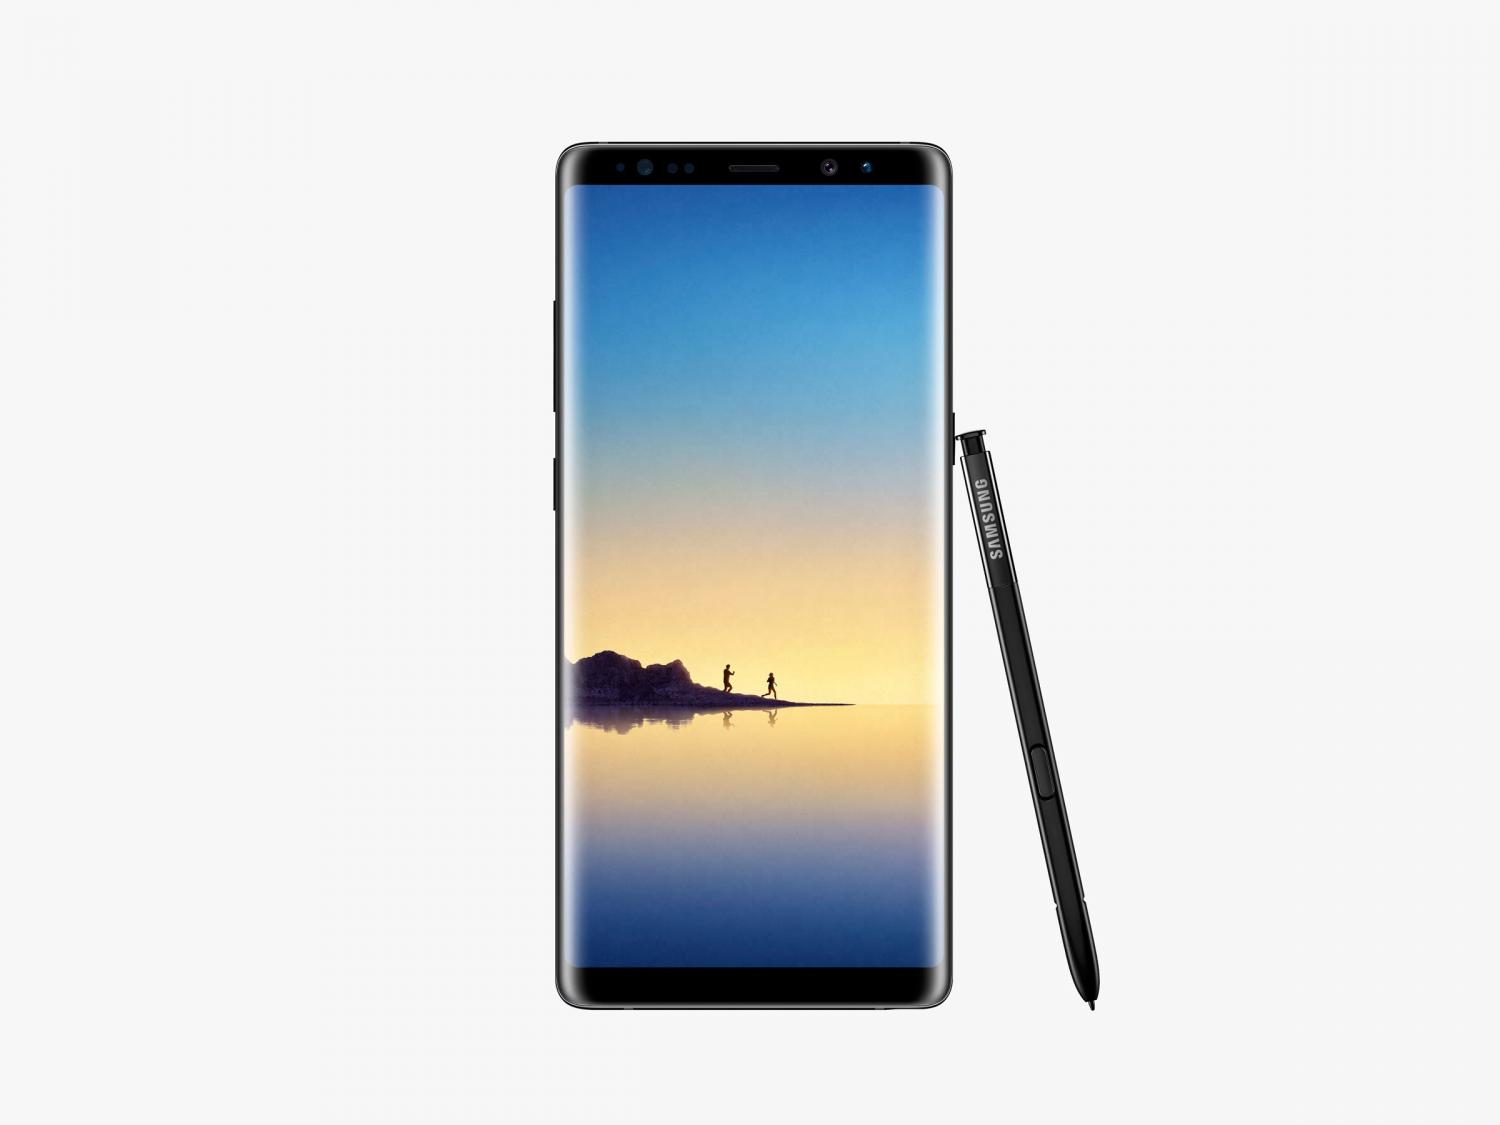 Samsung Galaxy Note 8 hands-on: The upgrade Note users are clamoring for